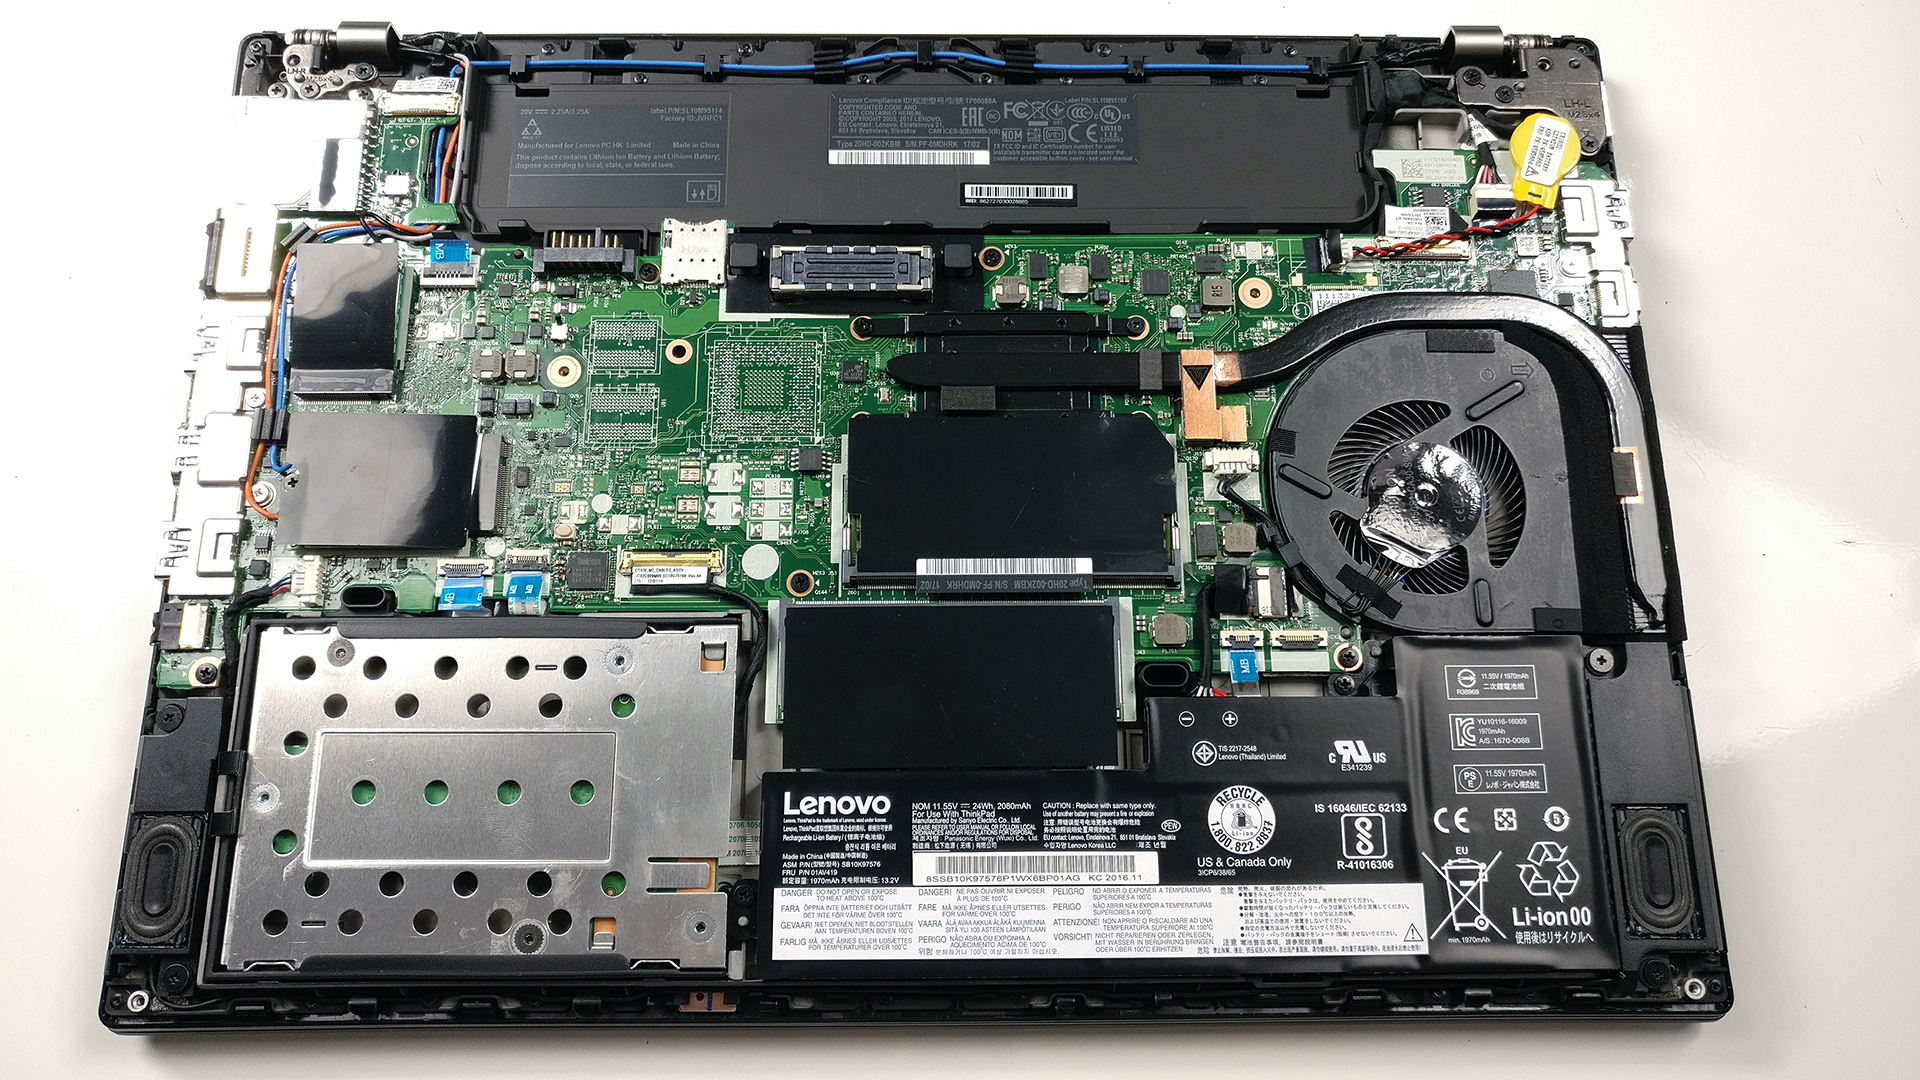 Inside Lenovo ThinkPad T470 – disassembly, internal photos